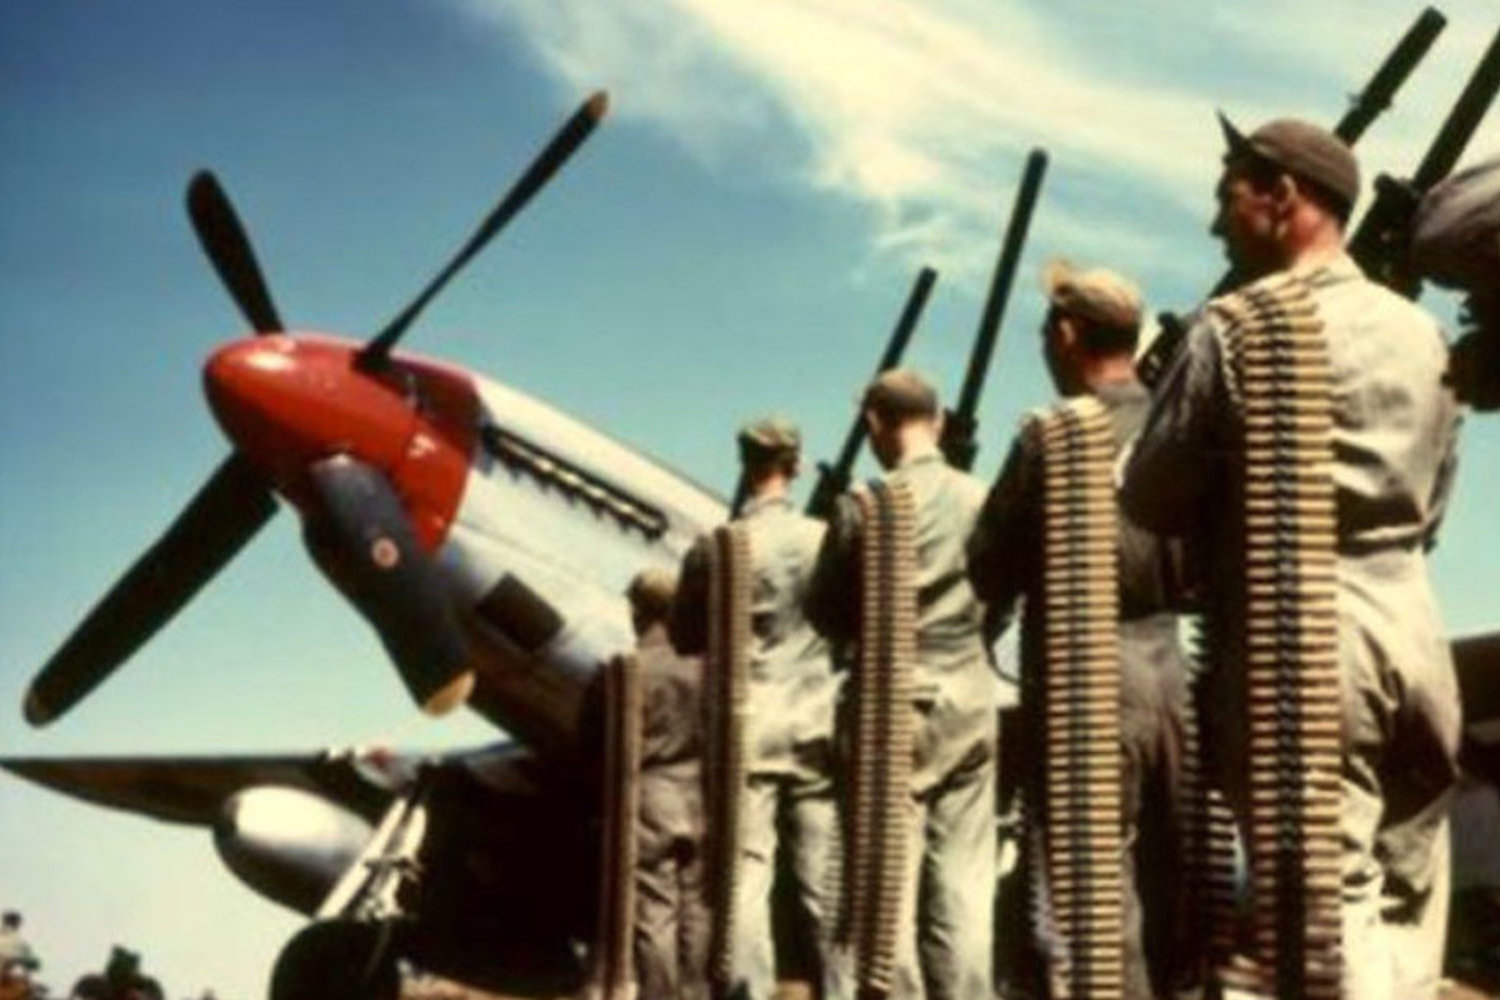 6 Terms You Won't Believe Have Military Origins